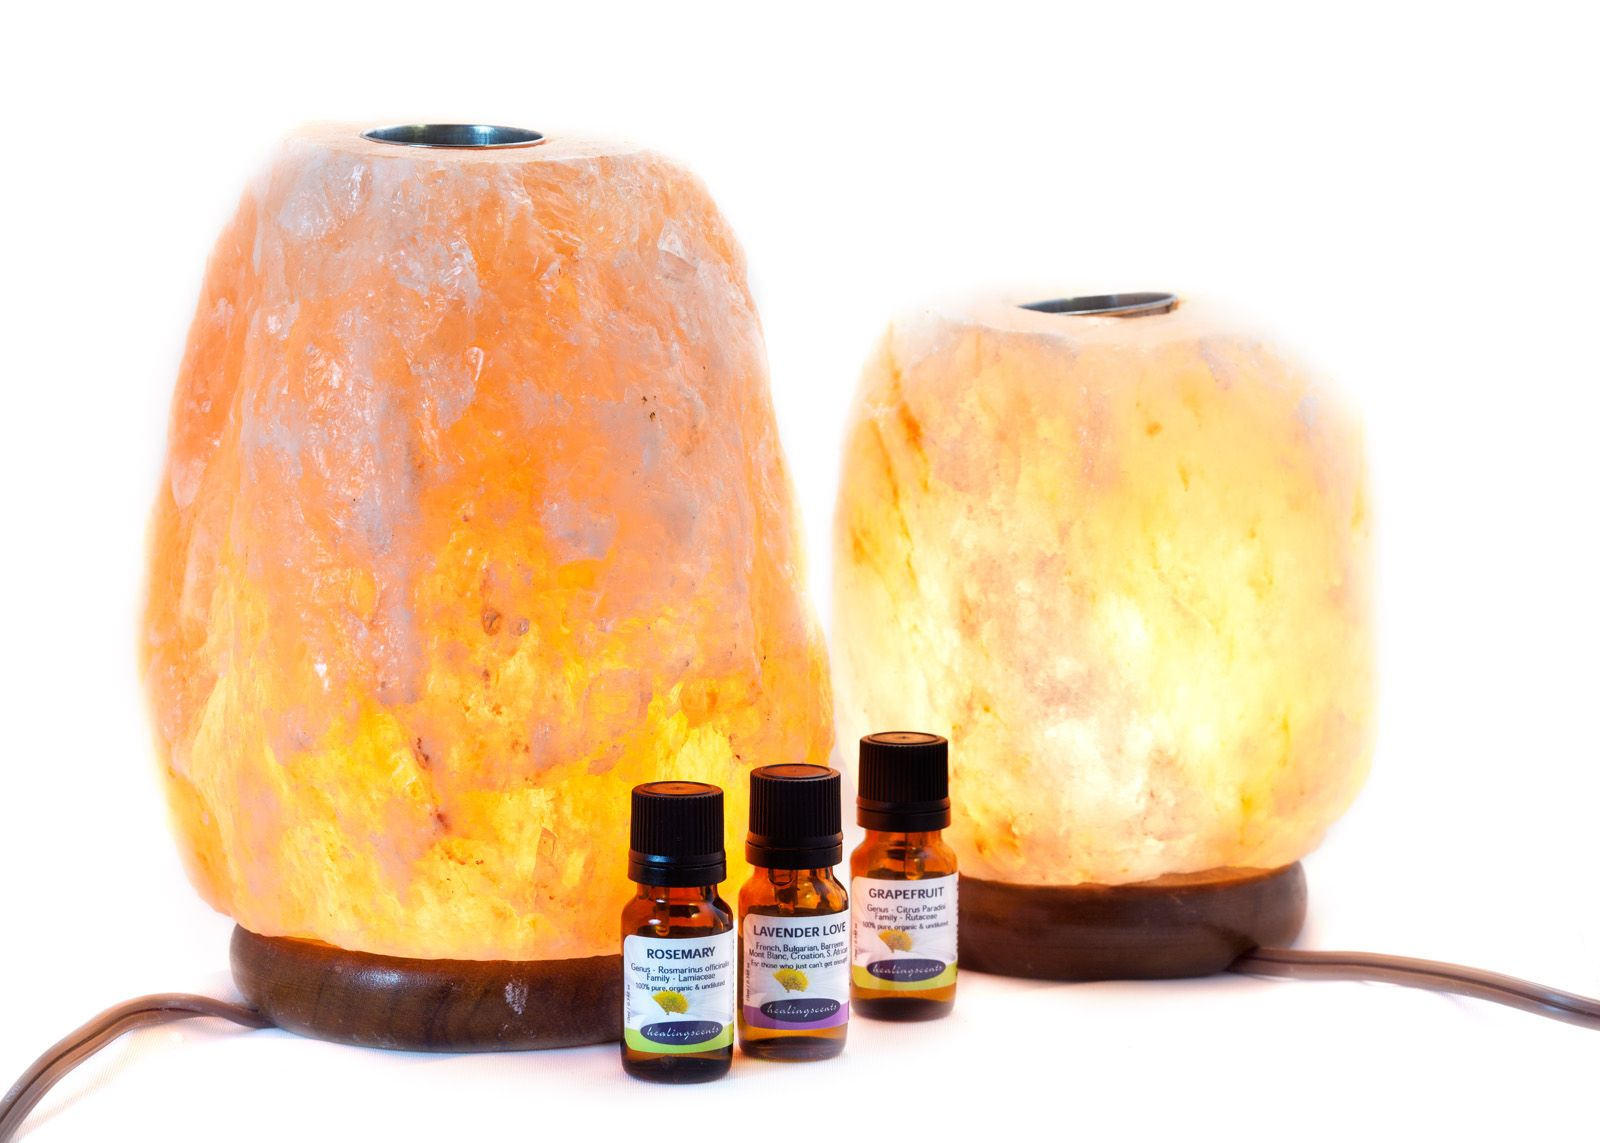 Where To Buy A Himalayan Salt Lamp Glamorous Himalayan Salt Lamp Diffusers  Healingscents Aromatherapy Design Inspiration